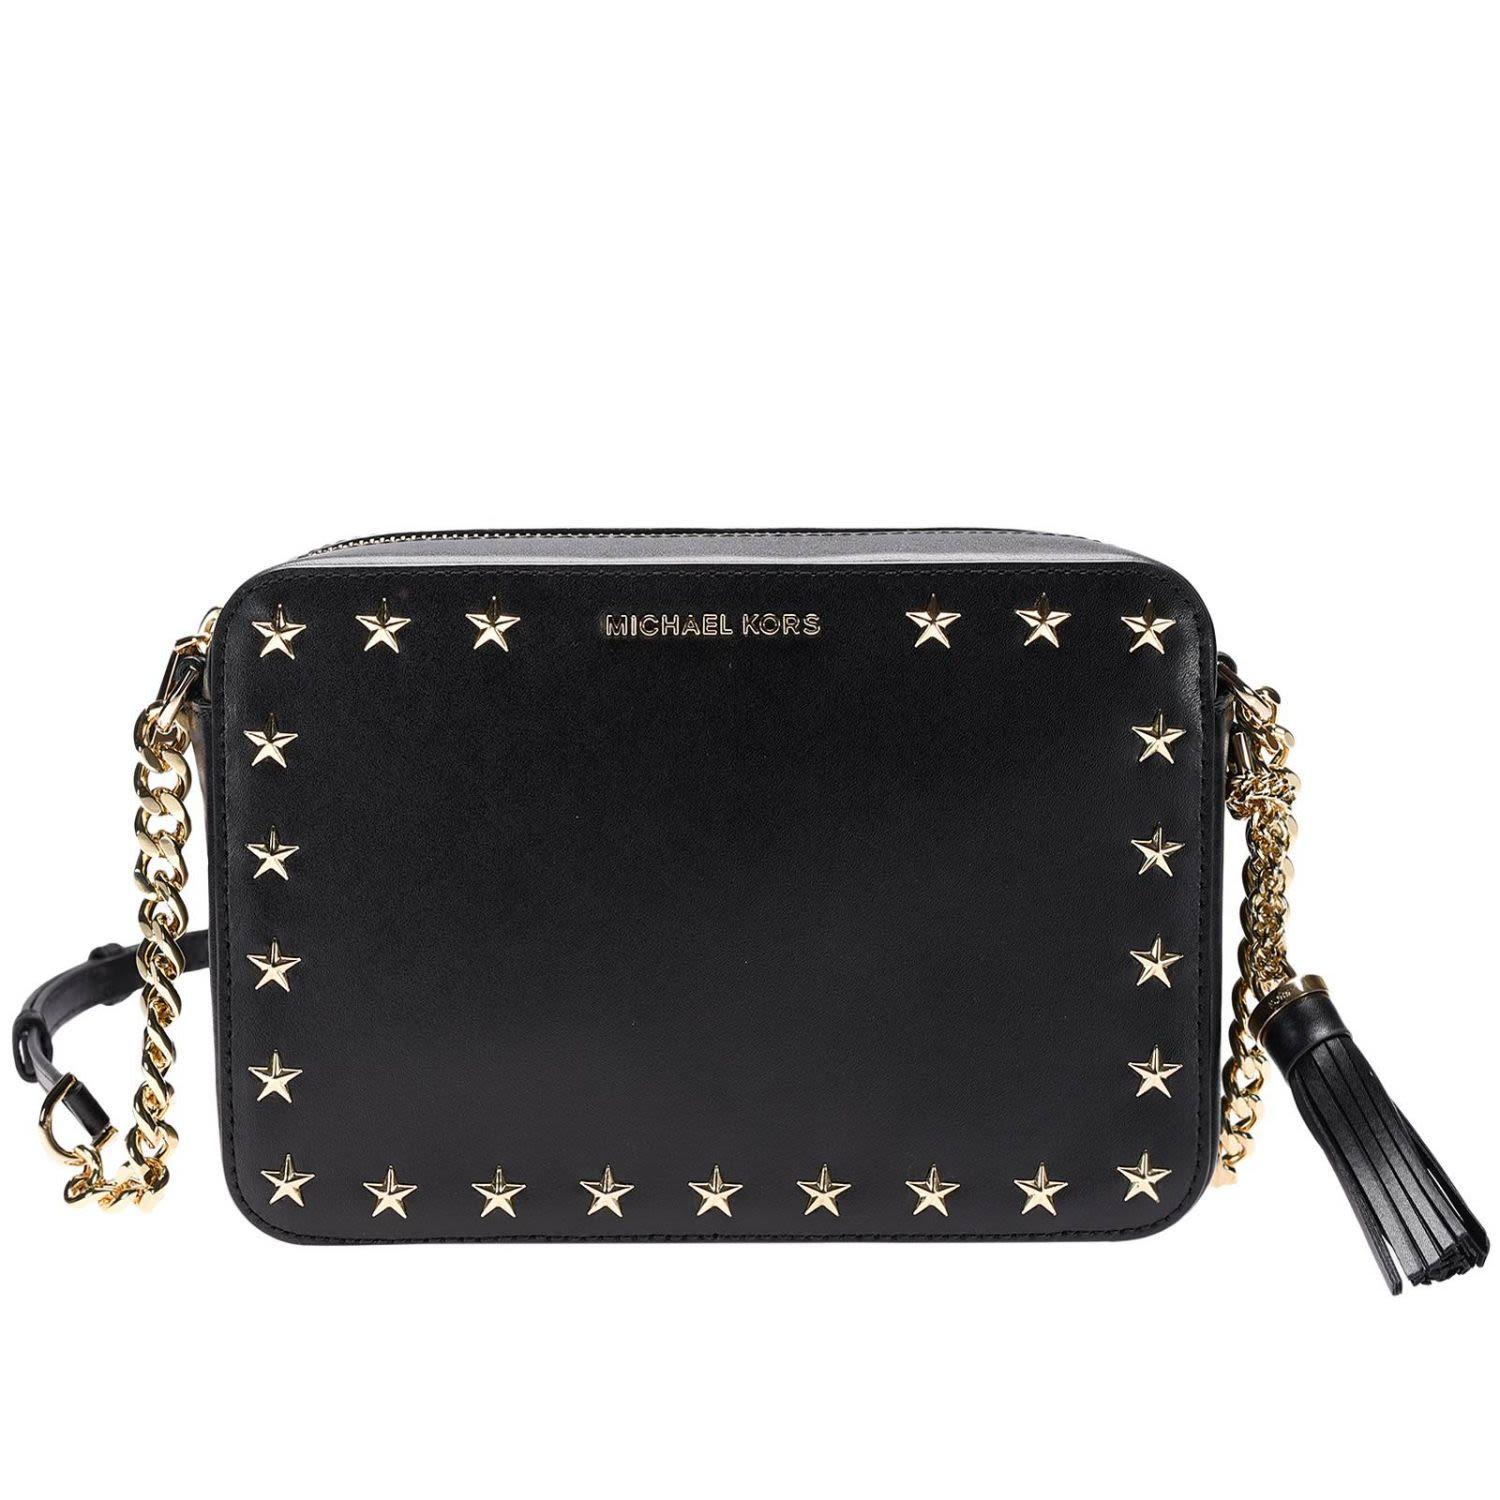 9376e8dc8c6106 Michael Michael Kors Medium Ginny Star Studded Leather Crossbody Camera Bag  - Black